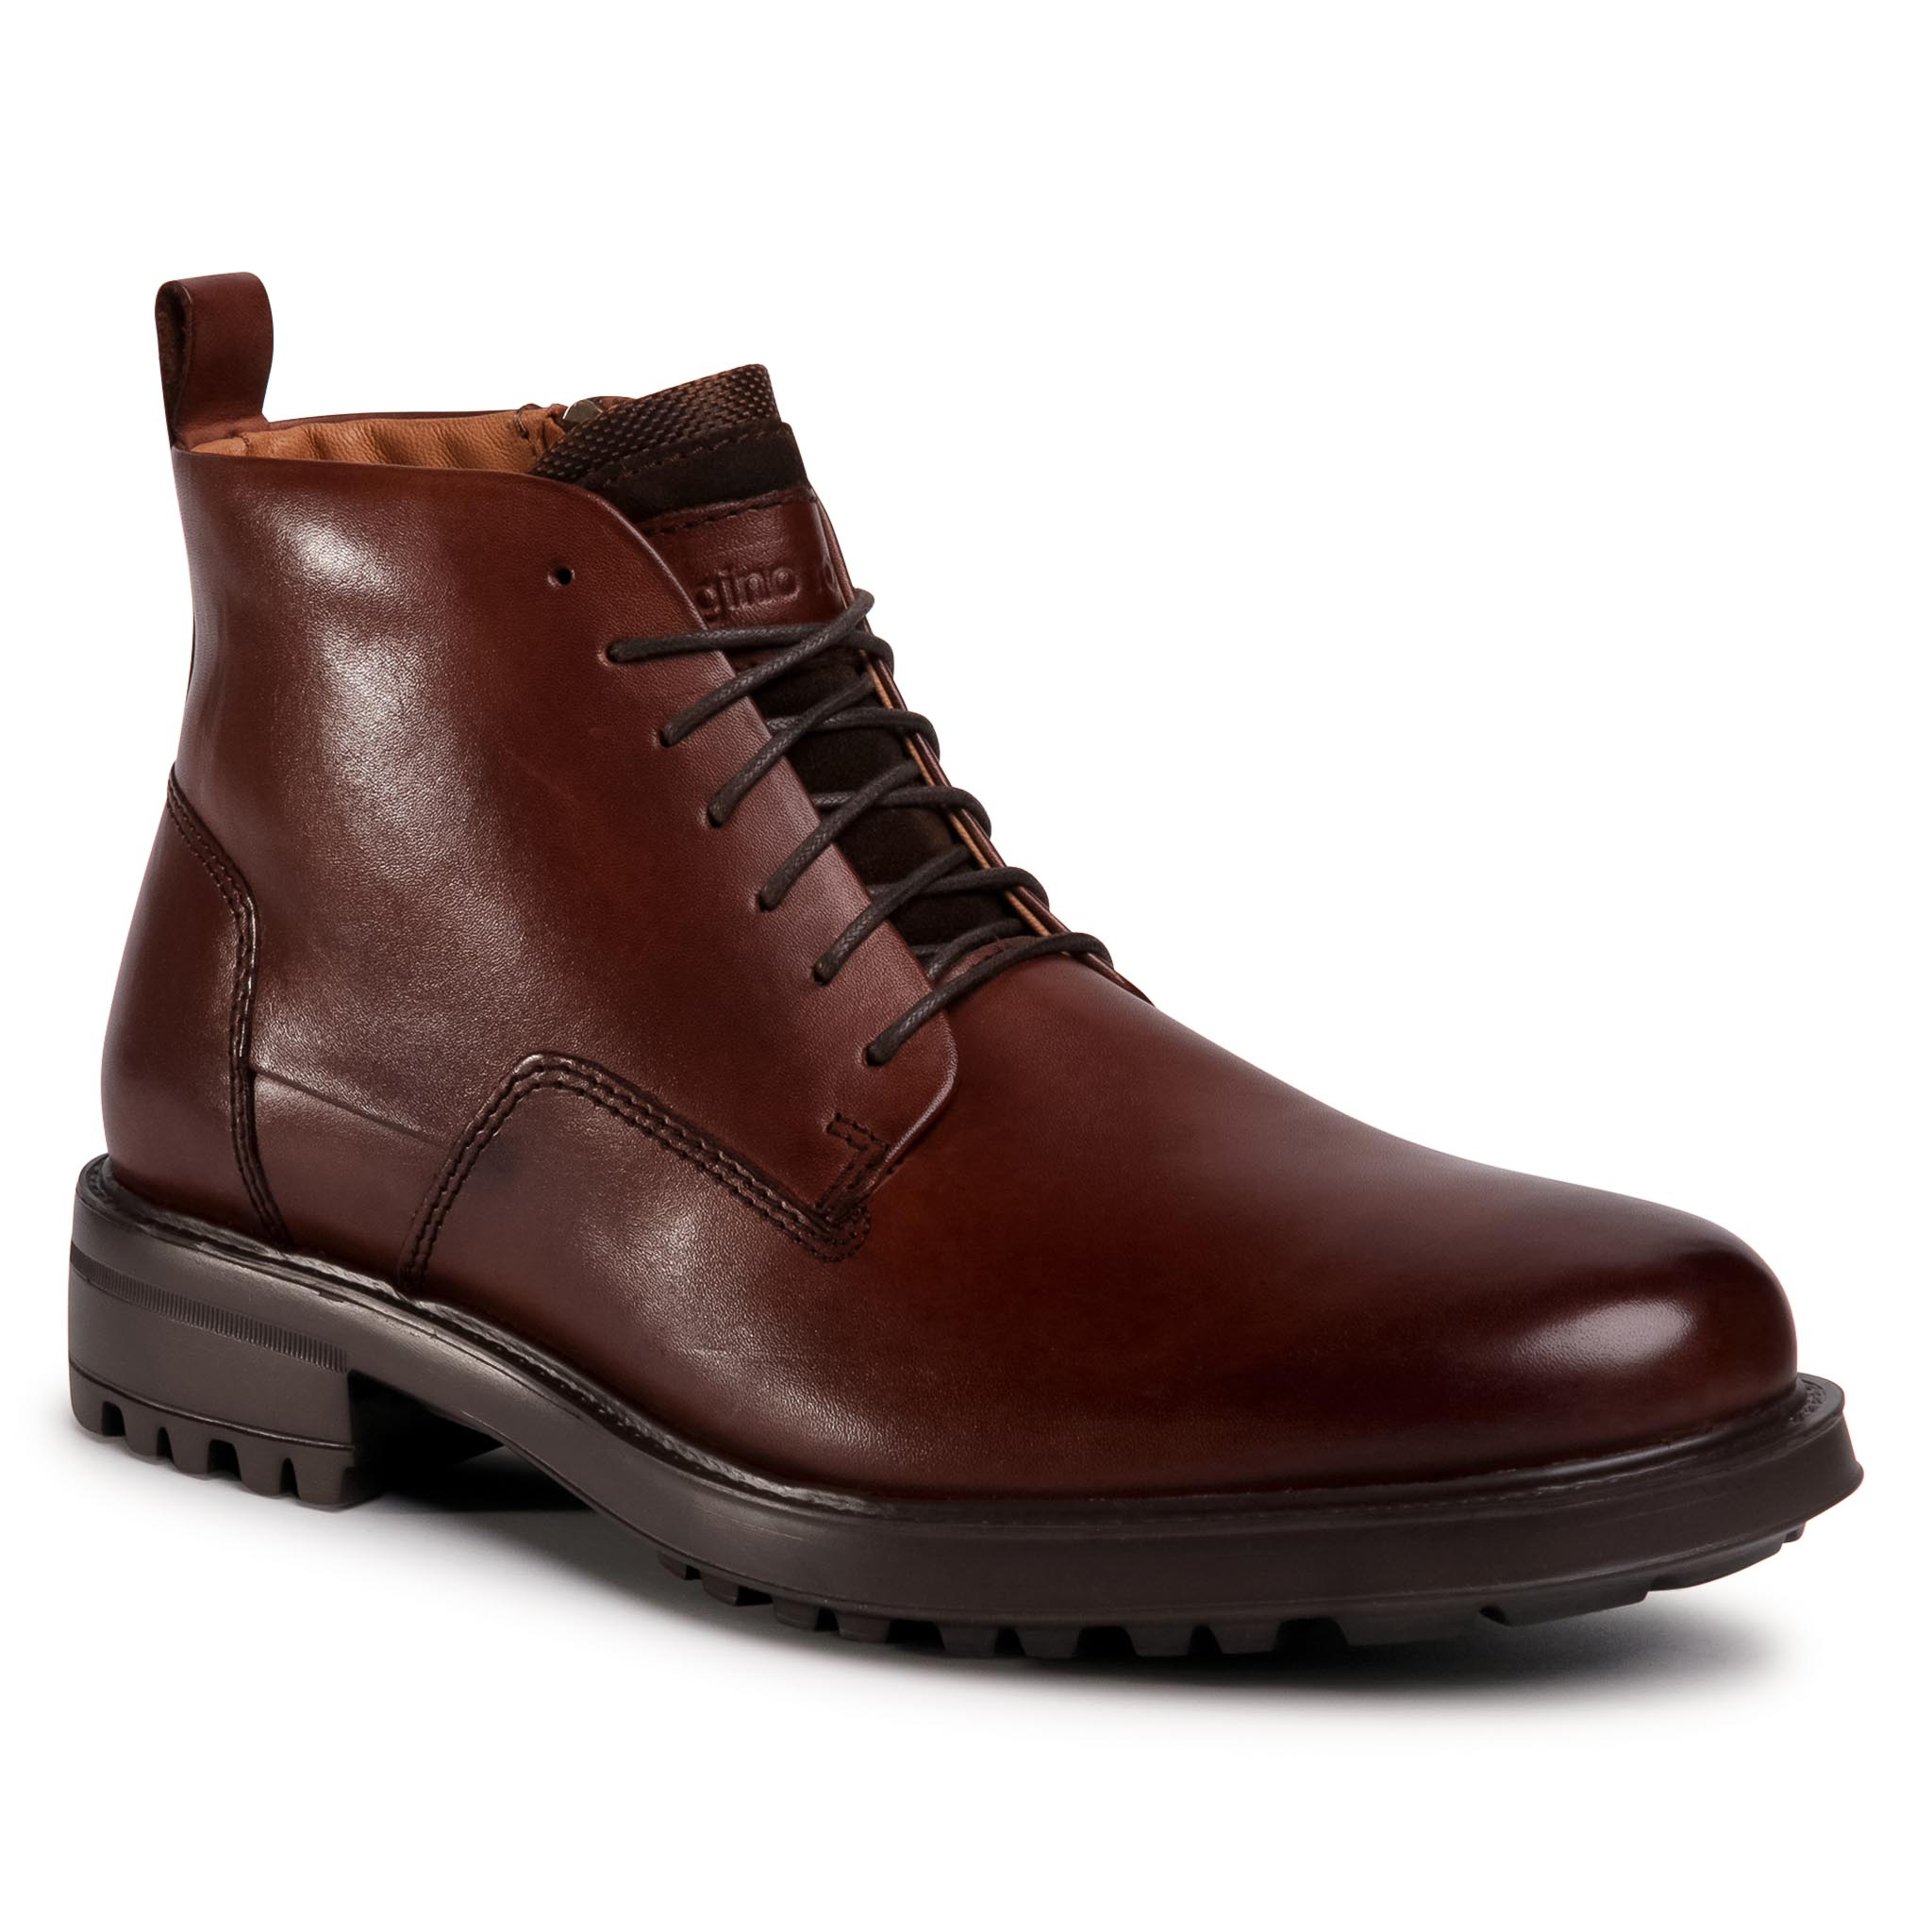 Bottes GINO ROSSI - MB-ROOSEVELT-01 Brown